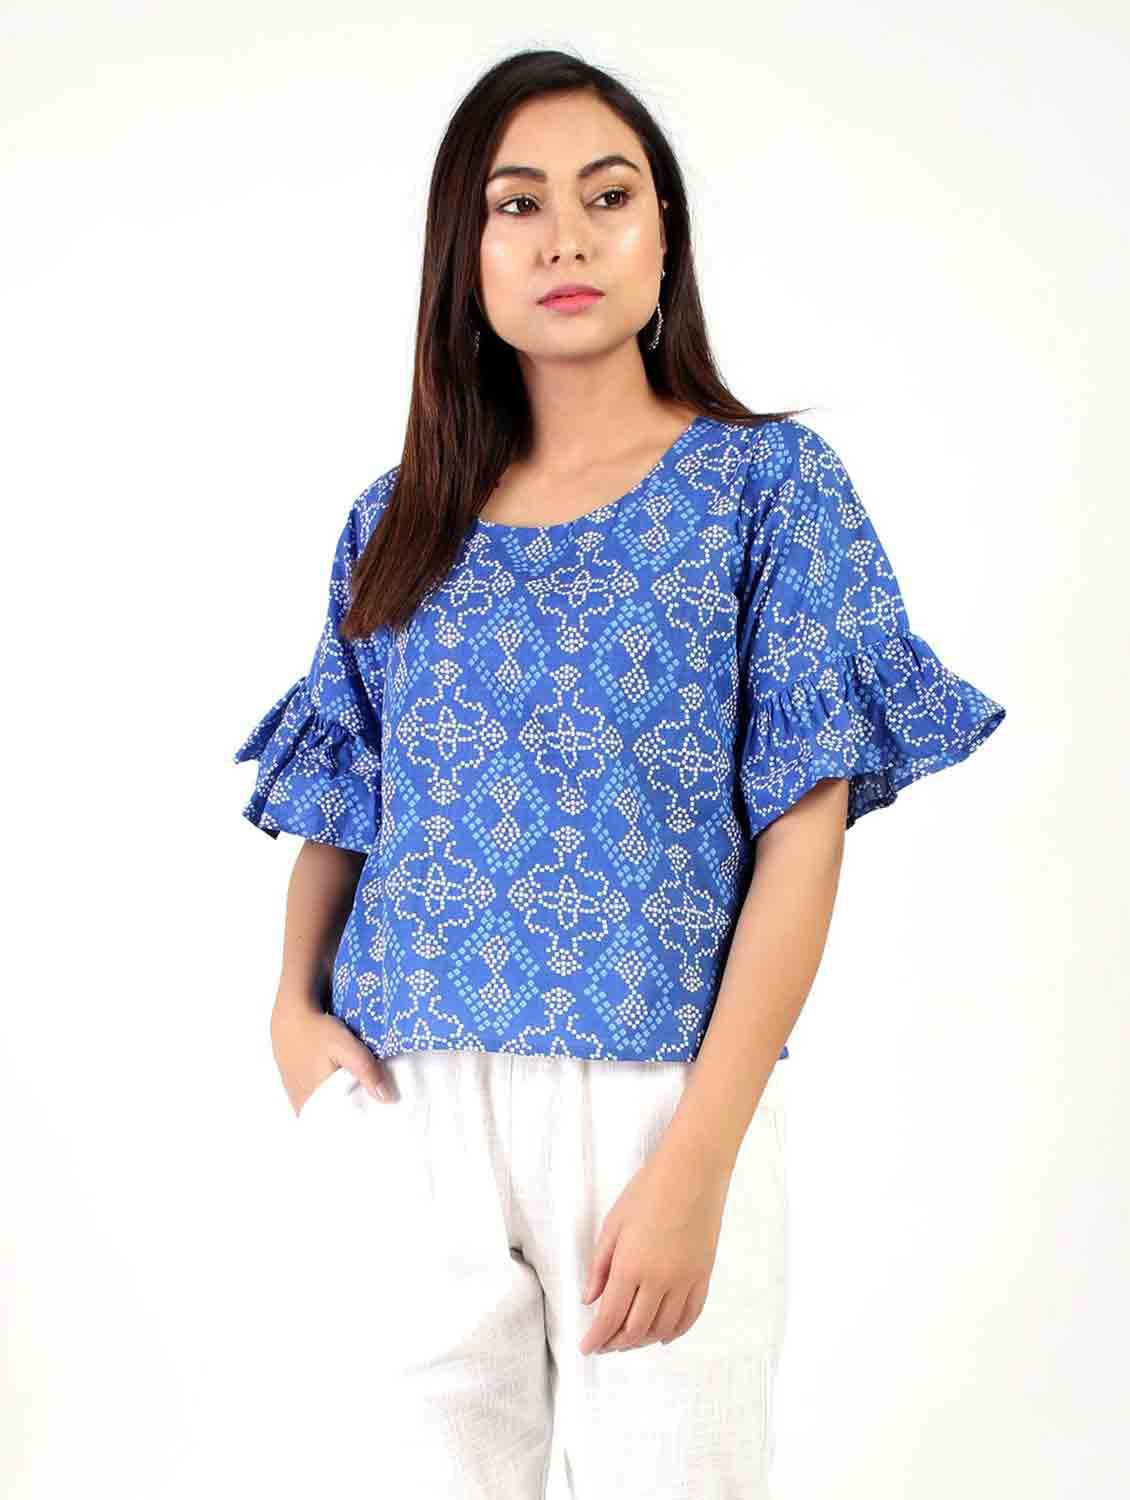 DECADENCE PRINTED TOP